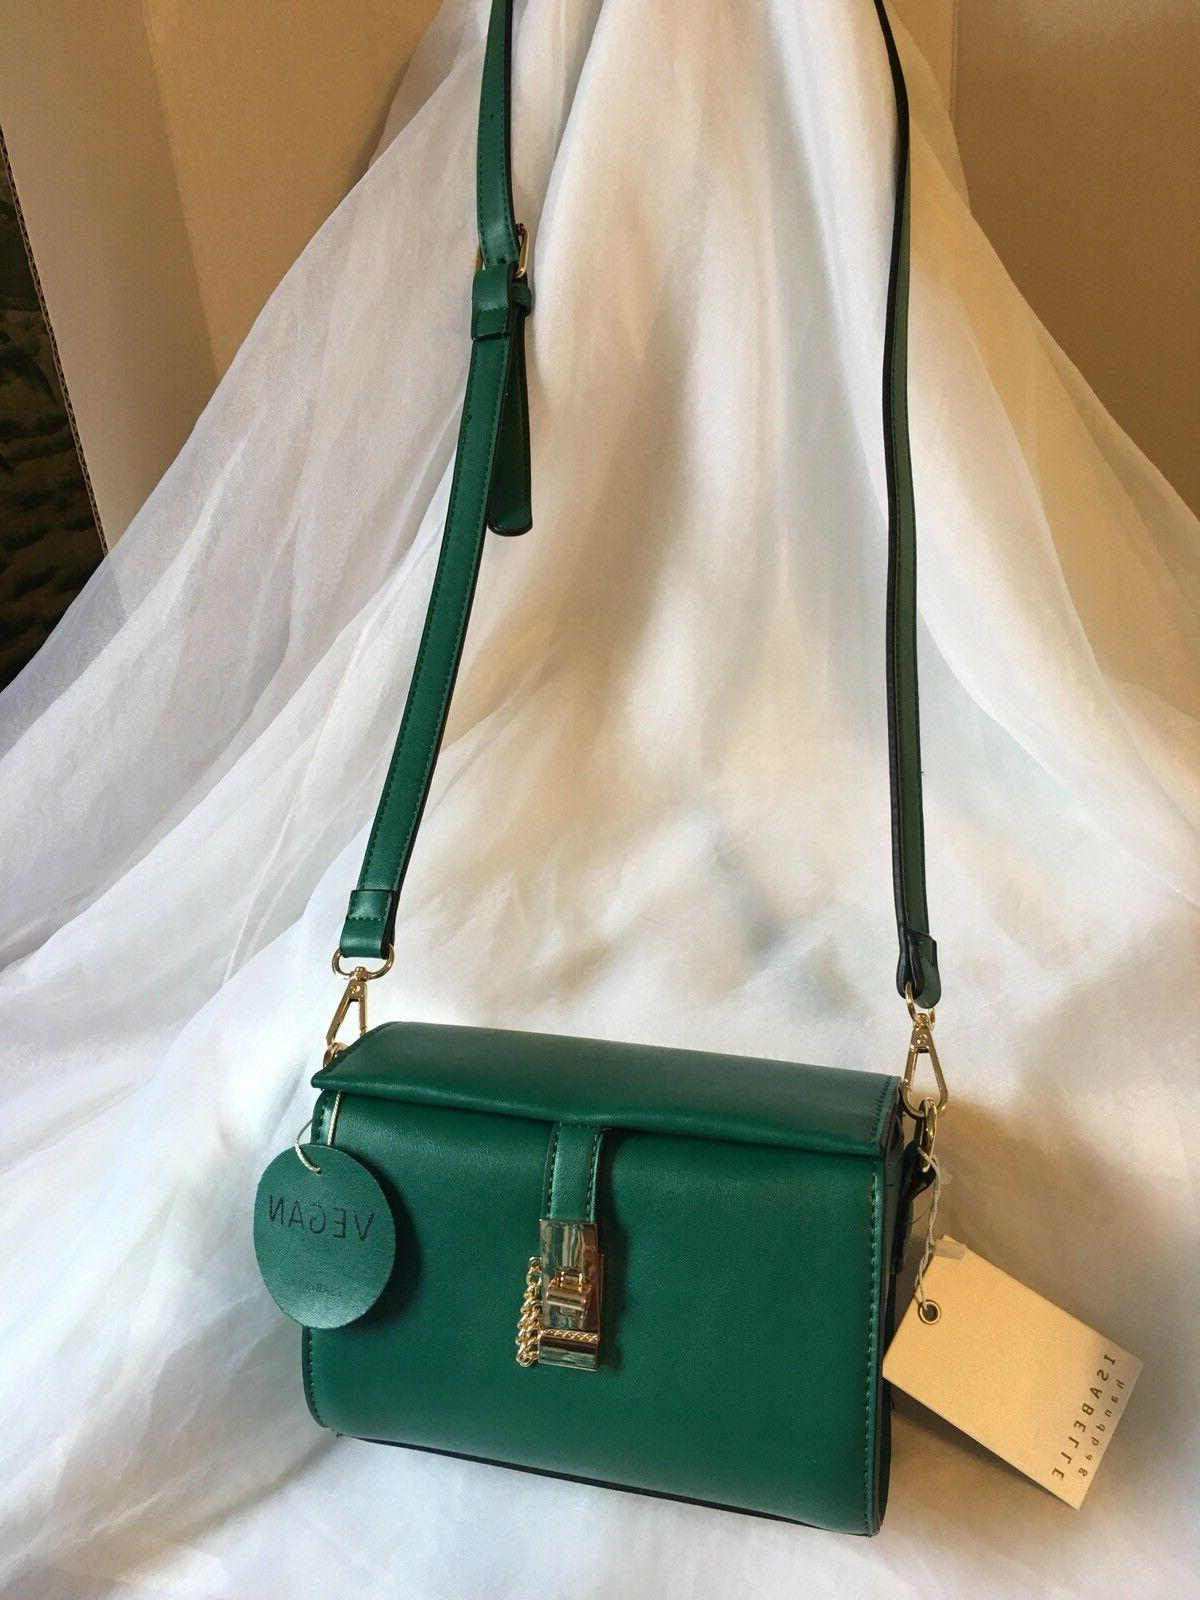 Isabelle Handbag Vegan Green Leather Crossbody Purse Bag With Label